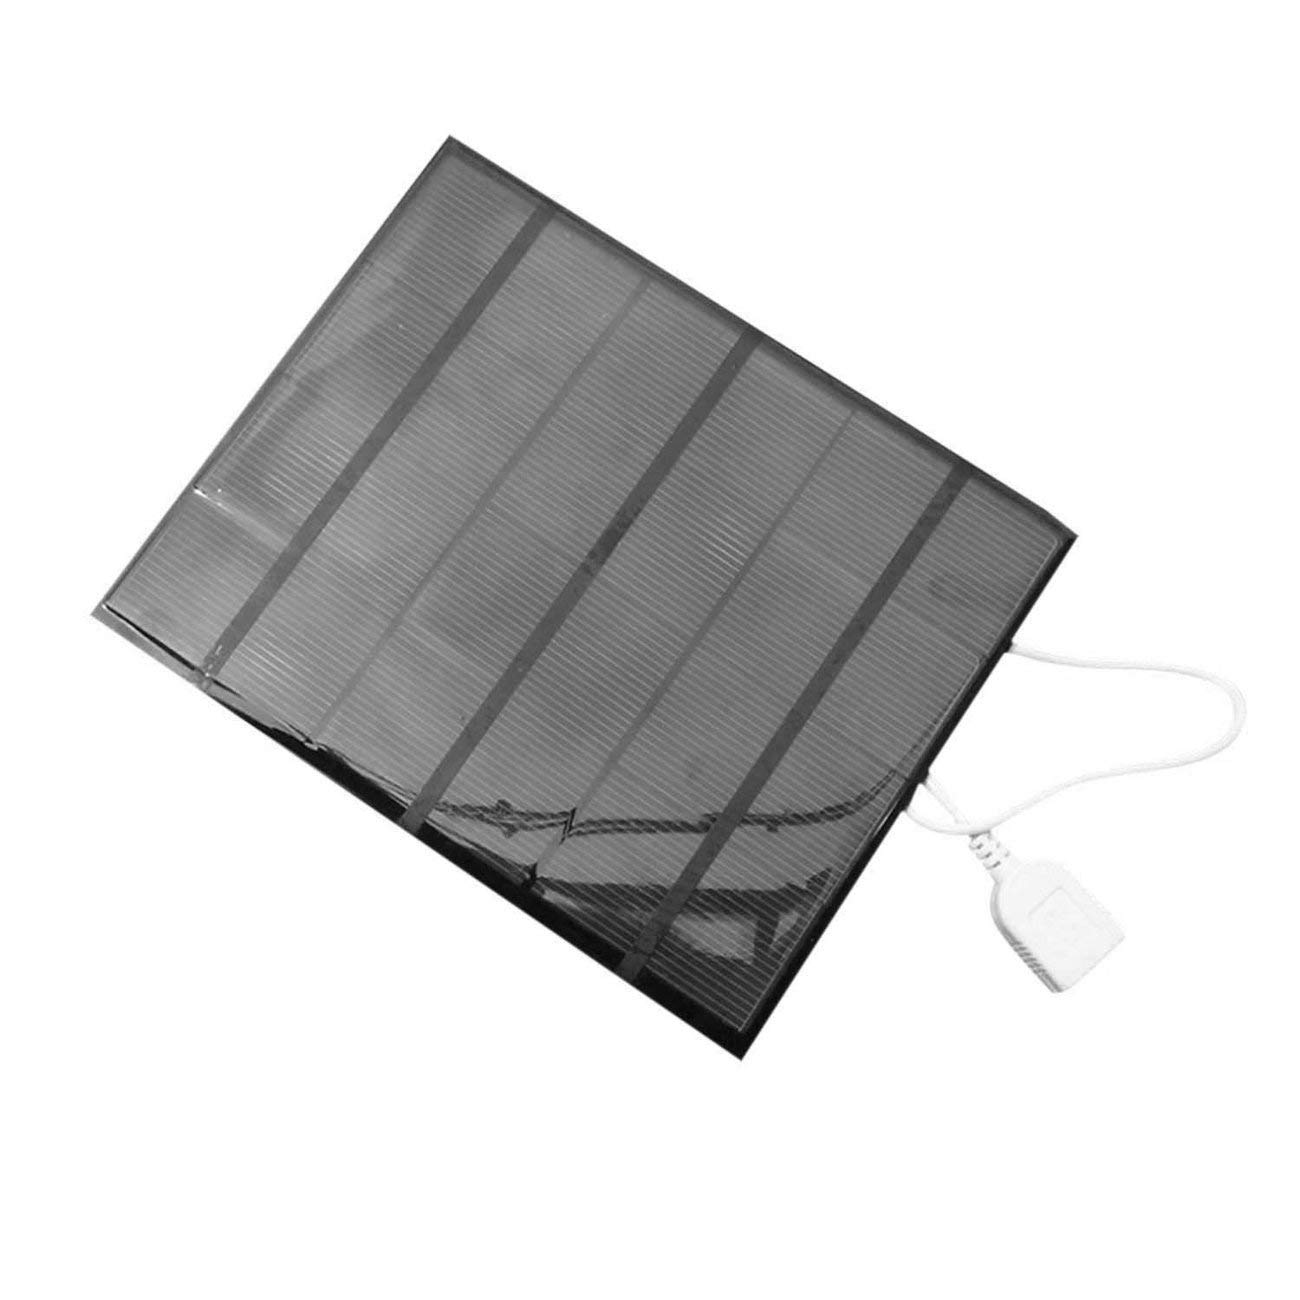 3.5W Solar Panel Power Bank External Battery Charger for Mobile Phone Tablet